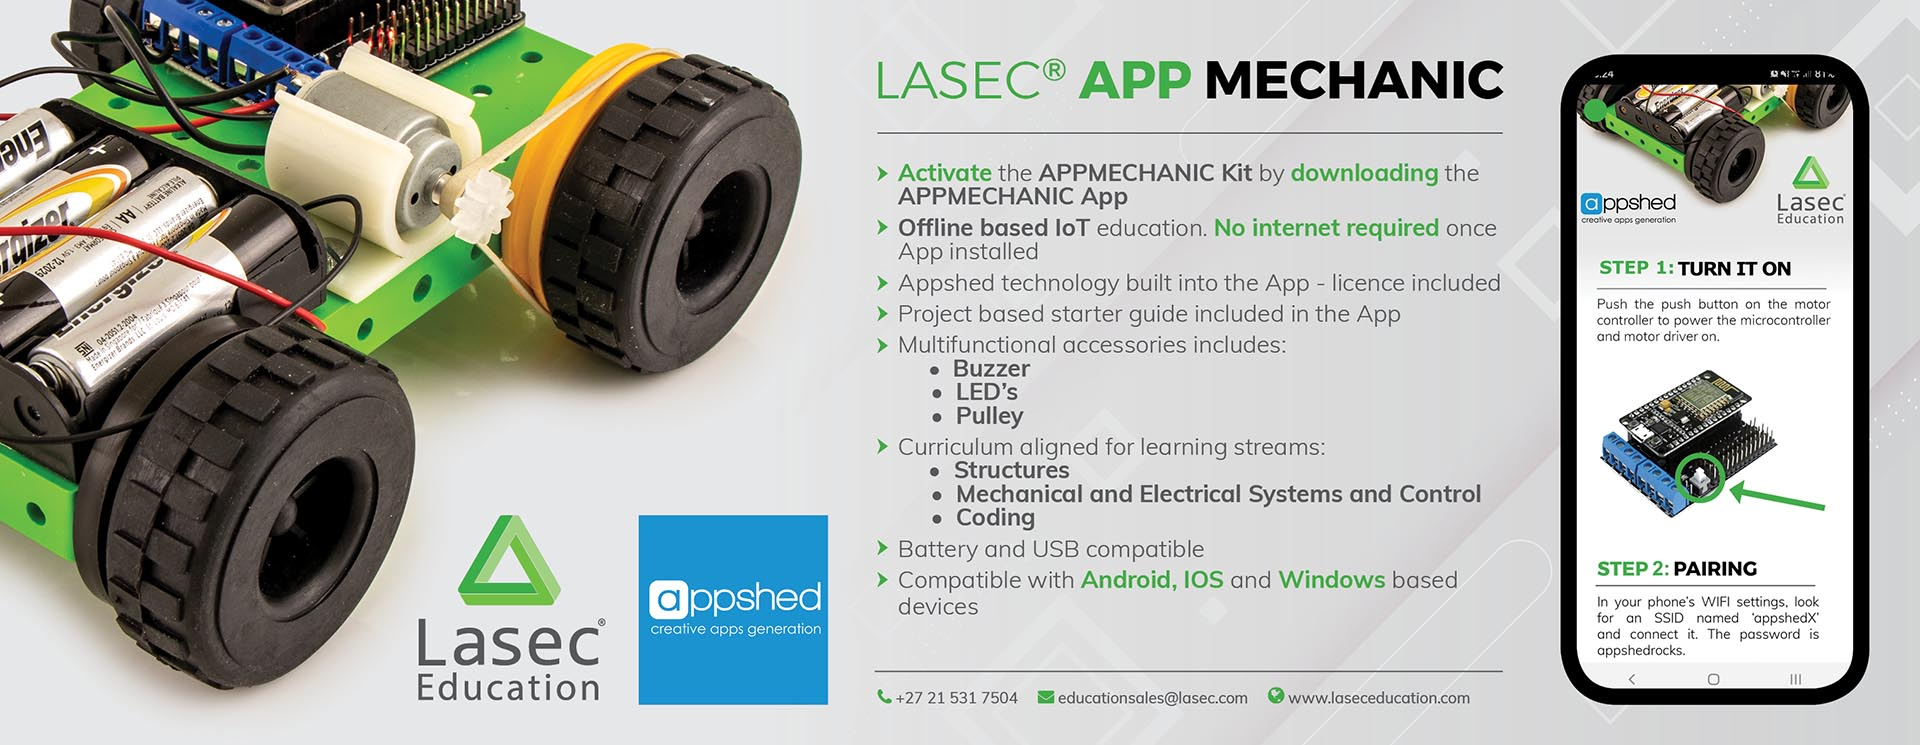 Lasec® Education App Mechanic